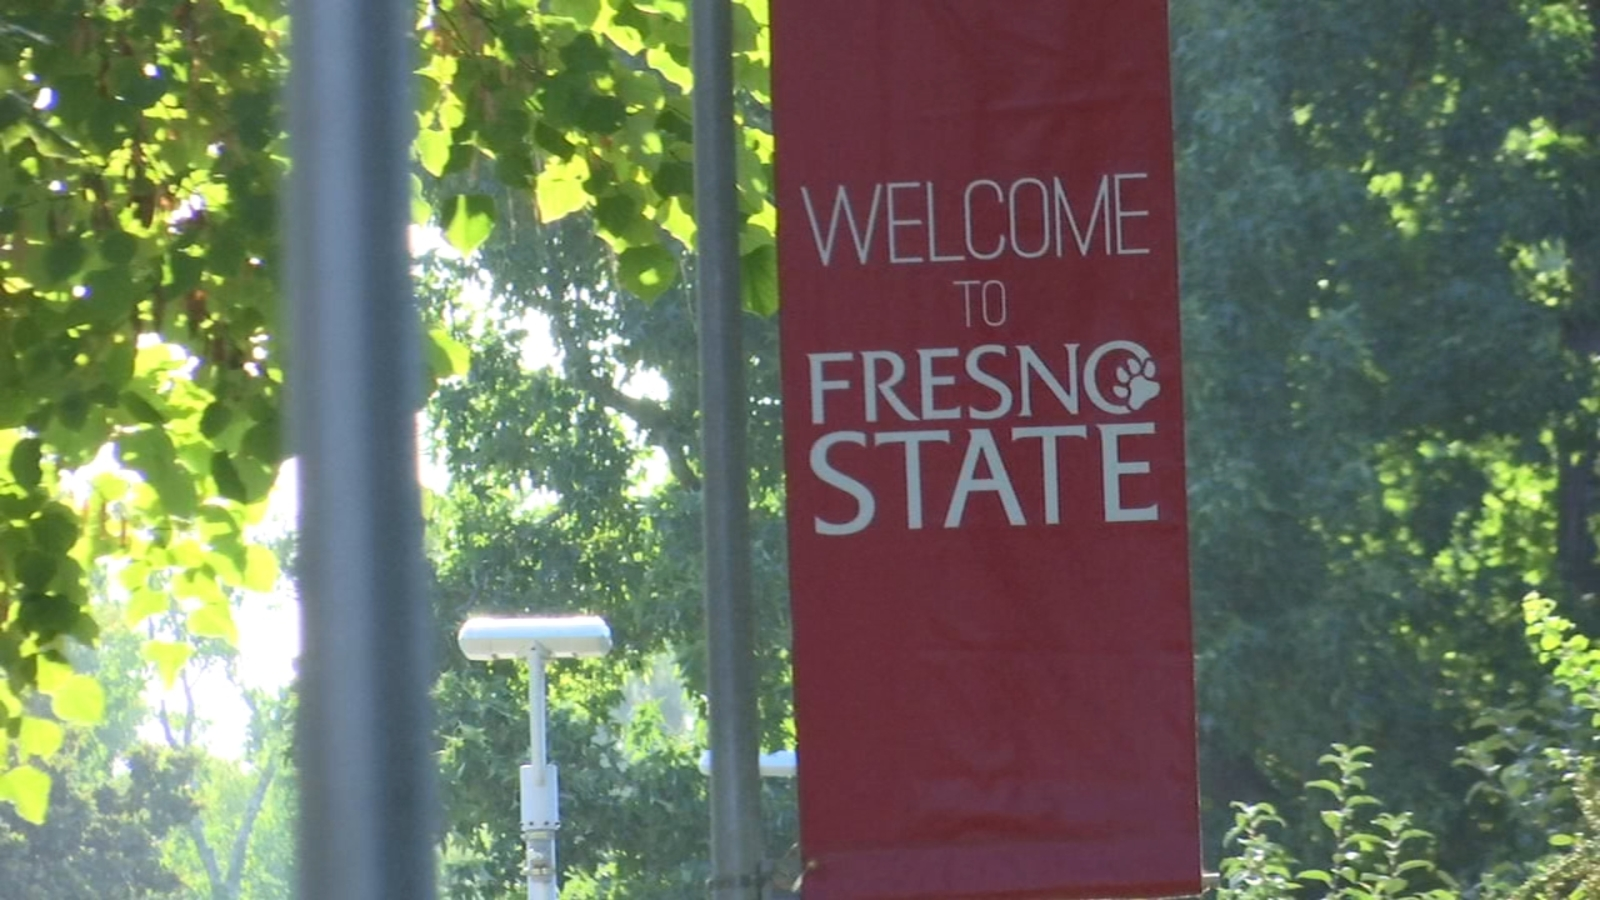 Fresno State campus crime report: Burglaries down, domestic violence up